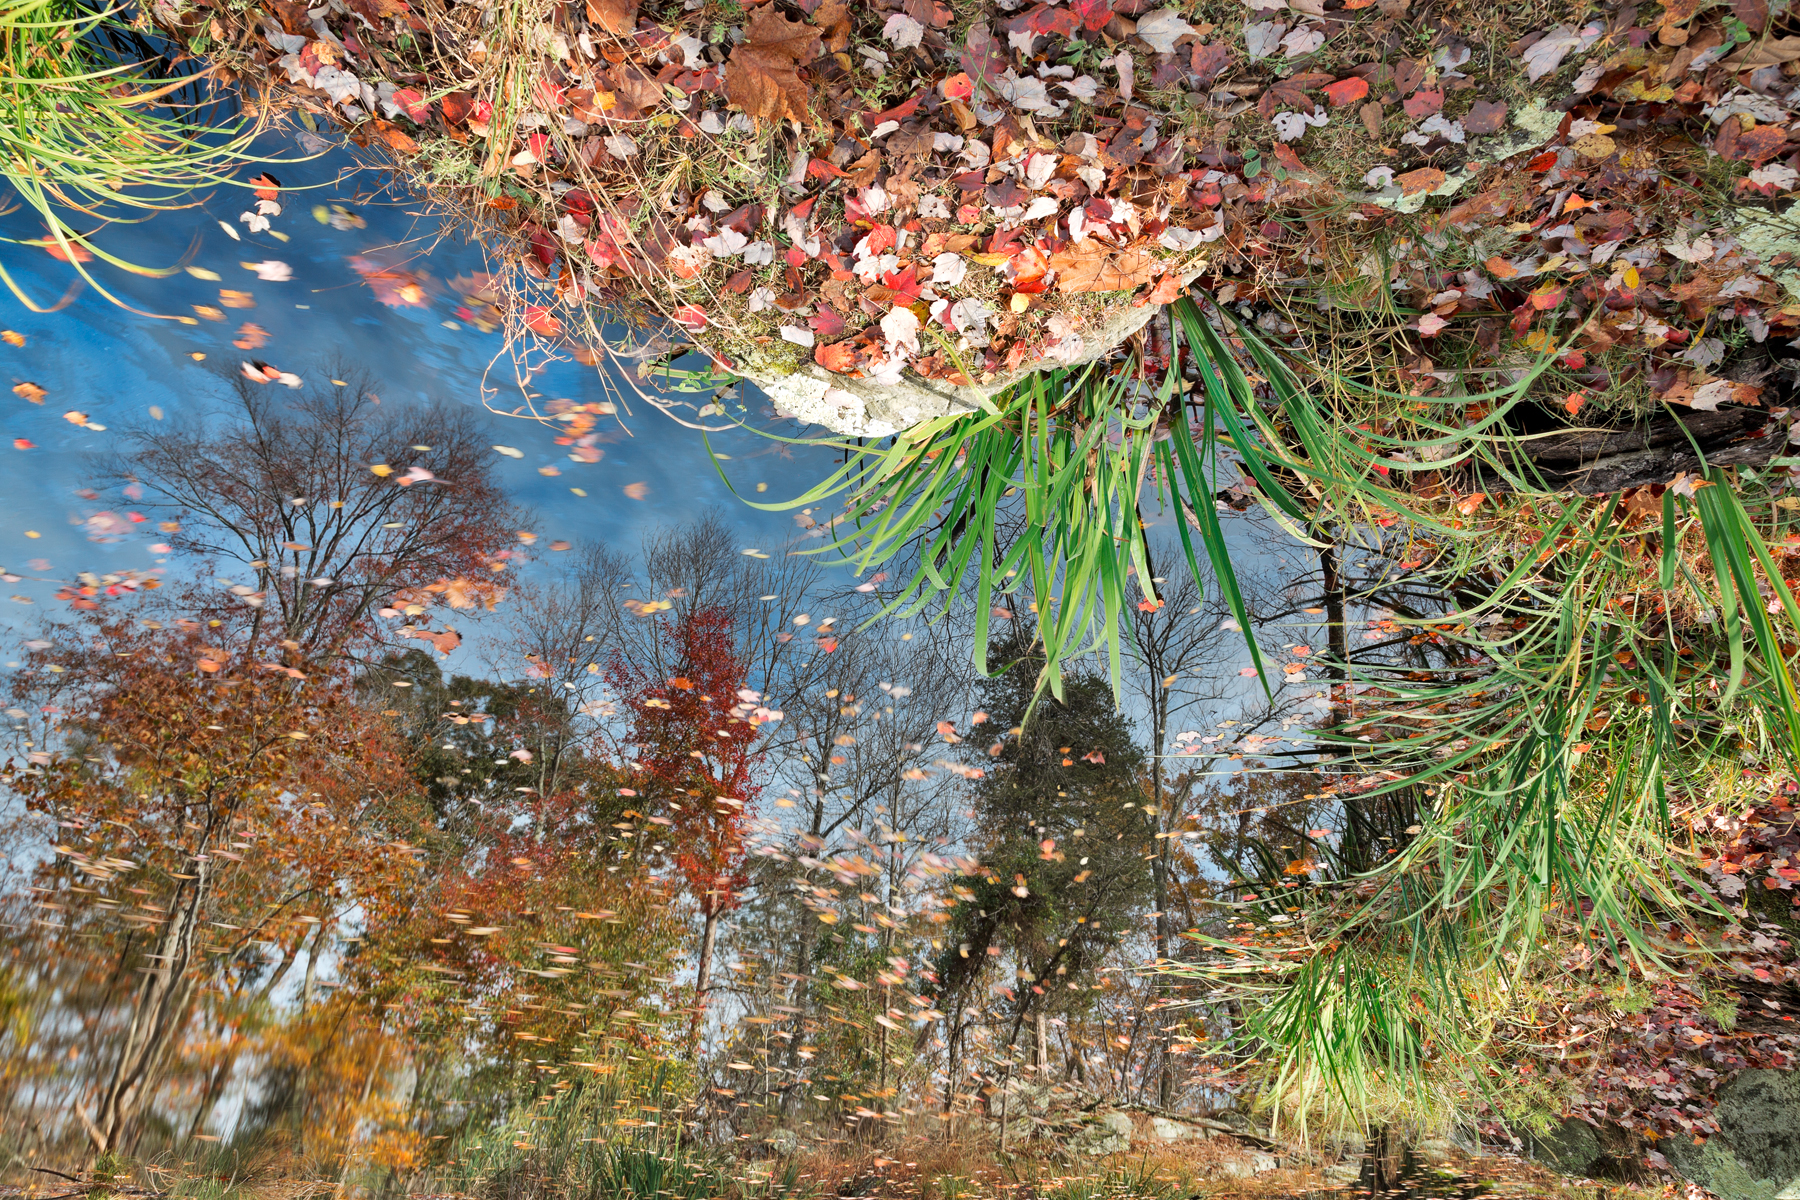 Autumn Pond Reflections, Abstract, Quiet, Serenity, Serene, HQ Photo